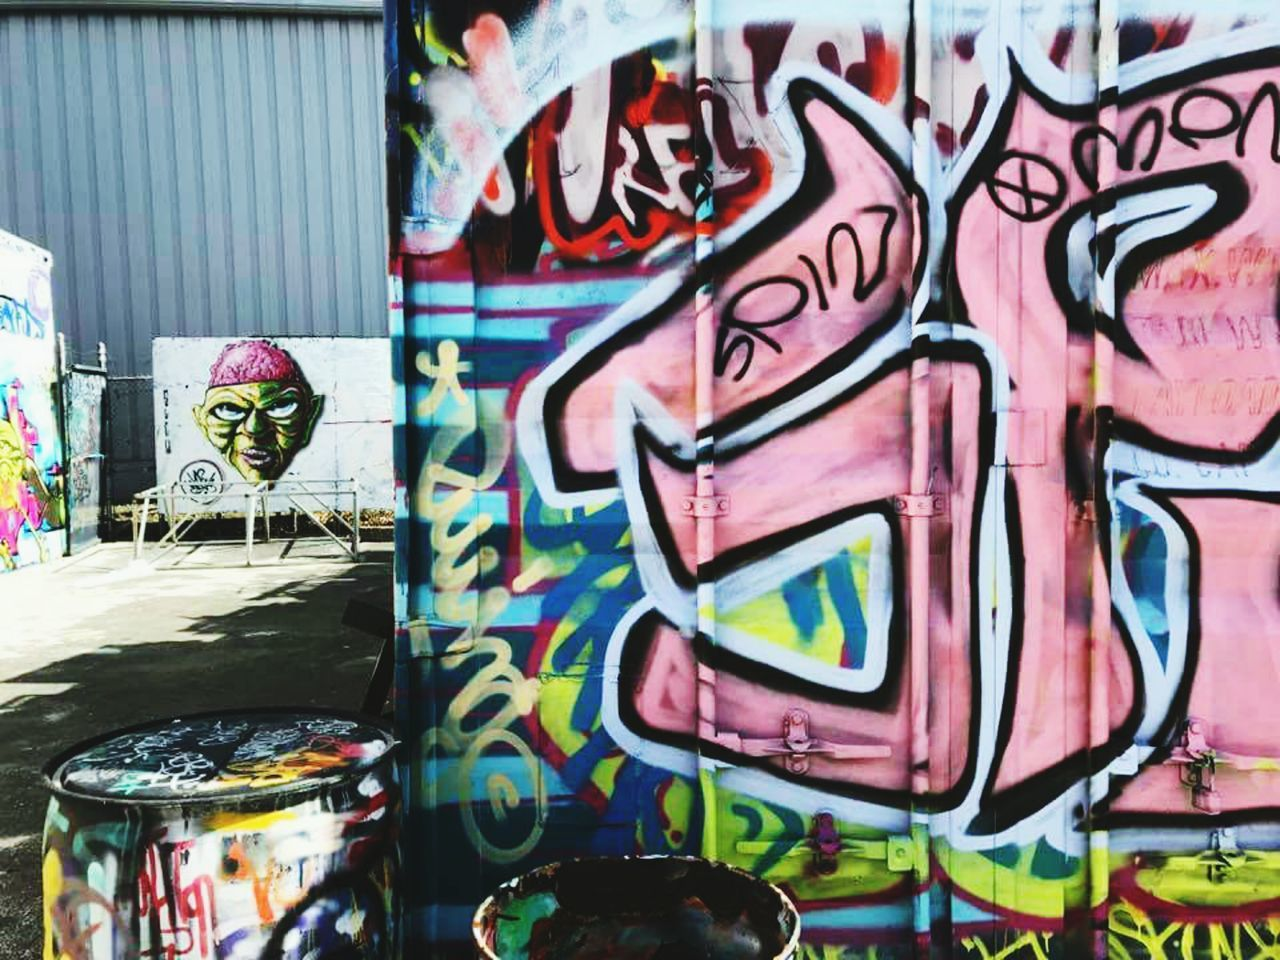 Graffiti Art And Craft Street Art Multi Colored Building Exterior Text No People Outdoors City Day Architecture Close-up Spray Paint